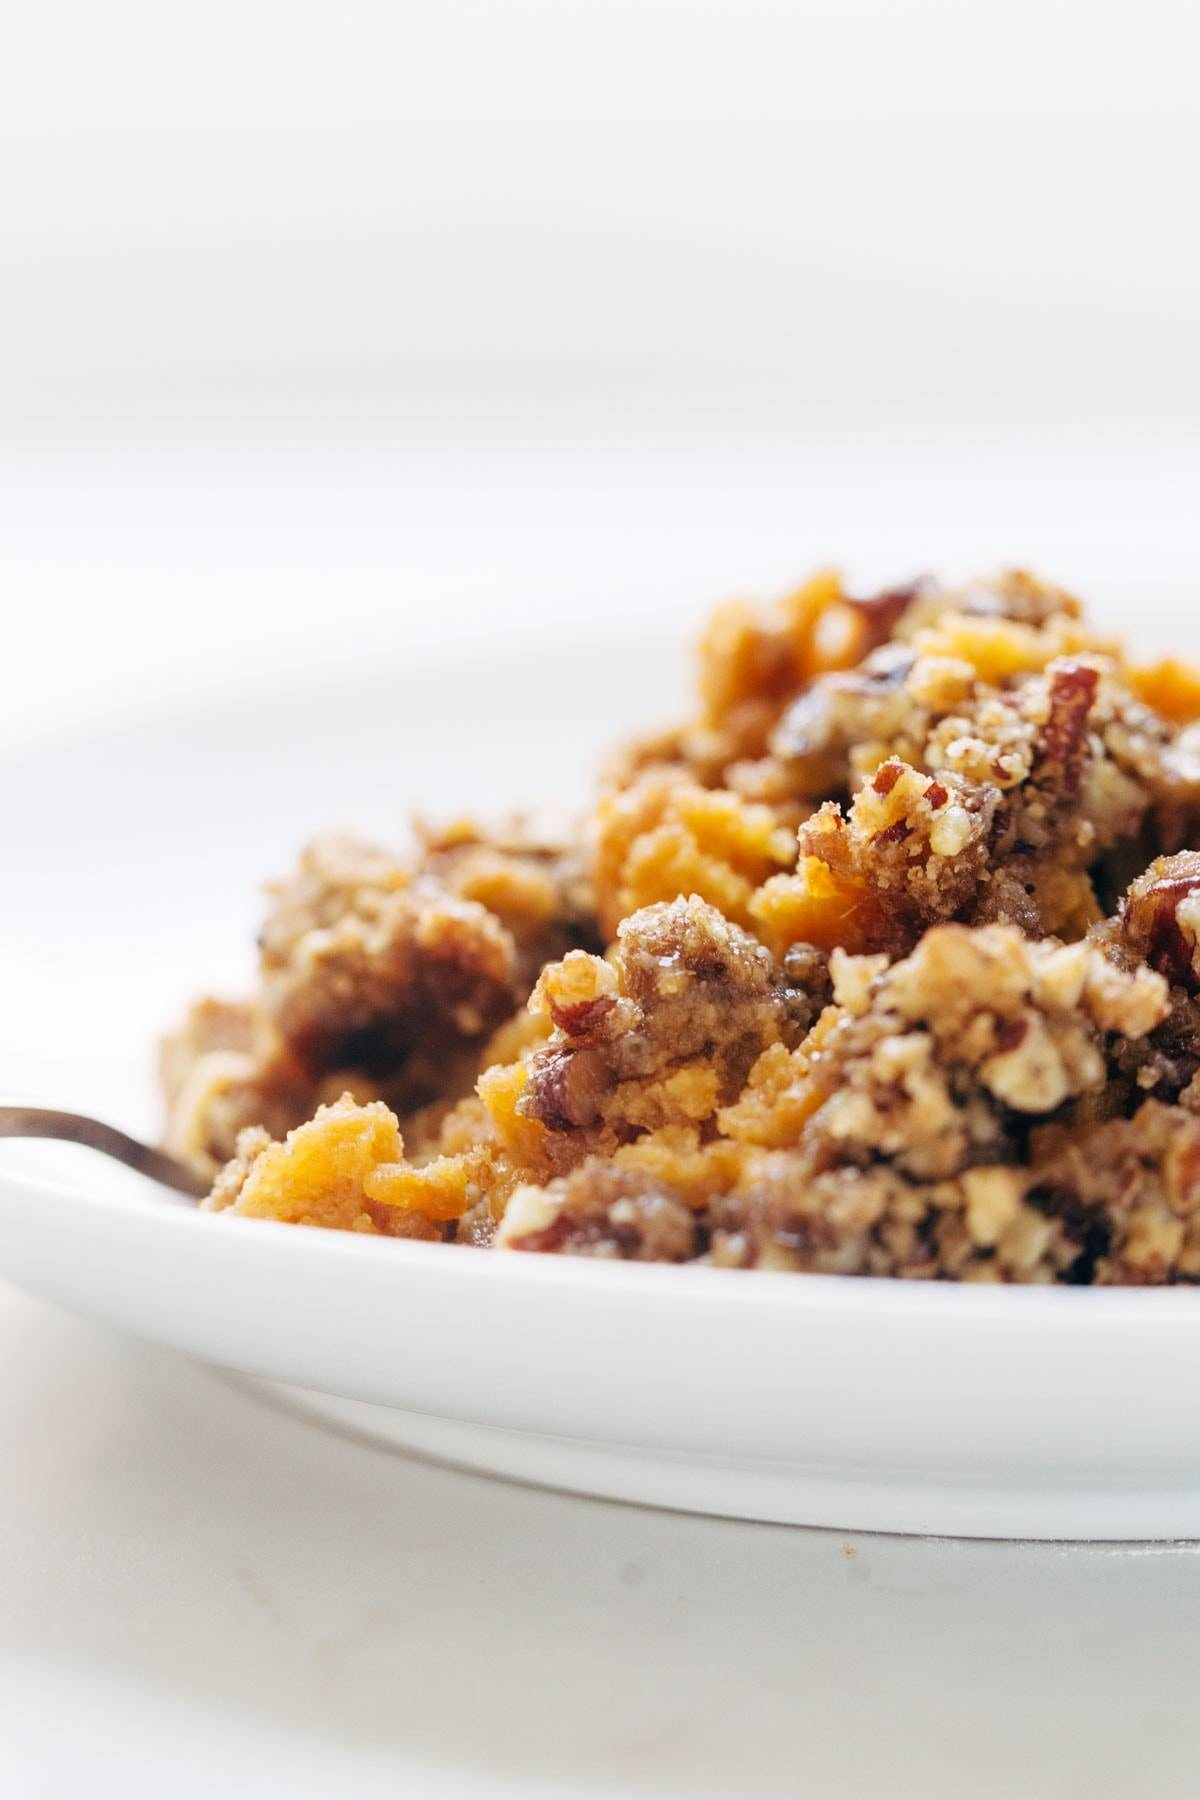 Sweet Potato Casserole with a crunchy brown sugar topping in a bowl with a fork